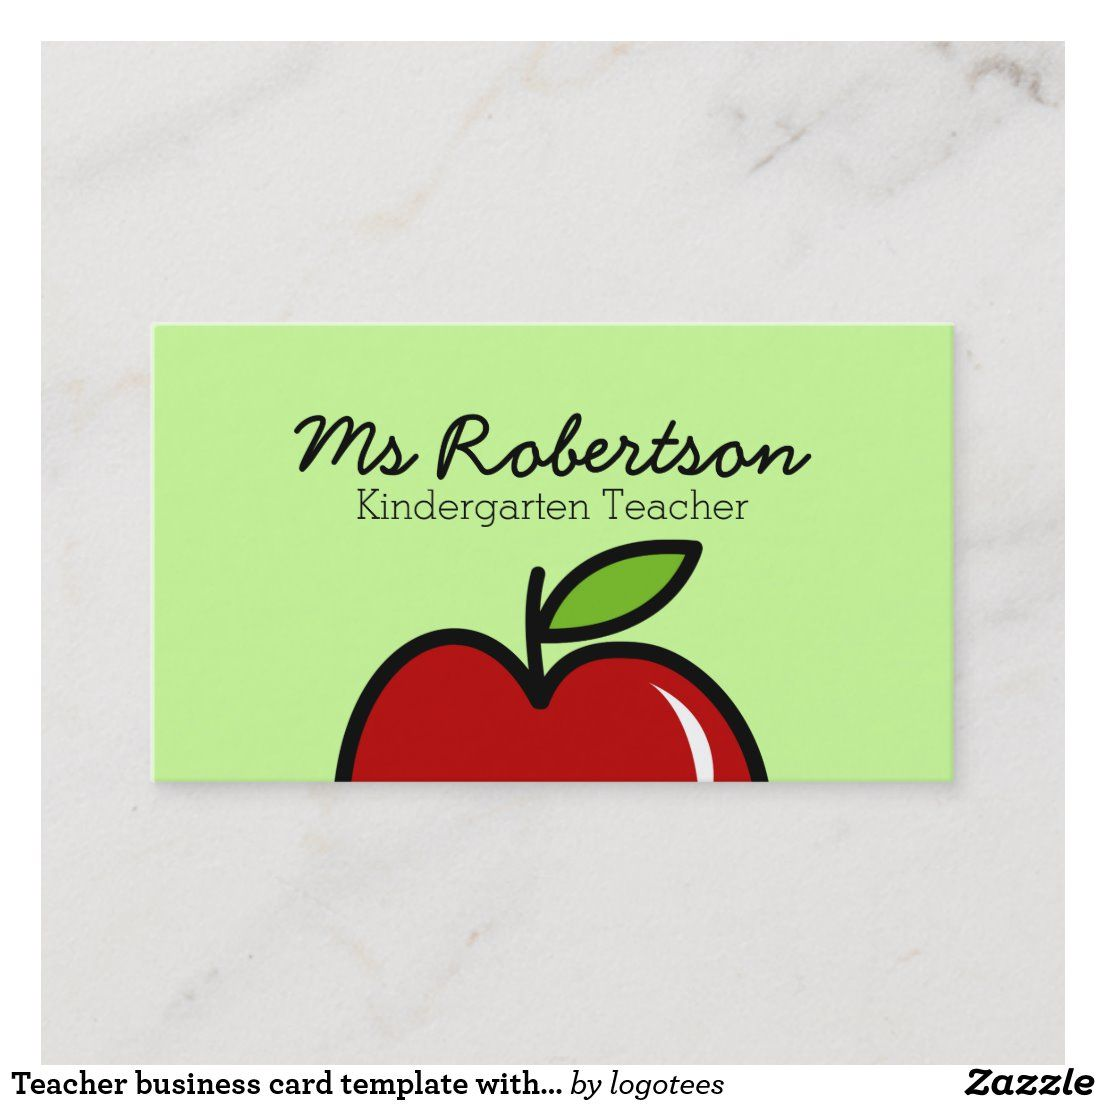 Teacher Business Card Template With Red Apple Zazzle Com Teacher Business Cards Business Card Template Card Template